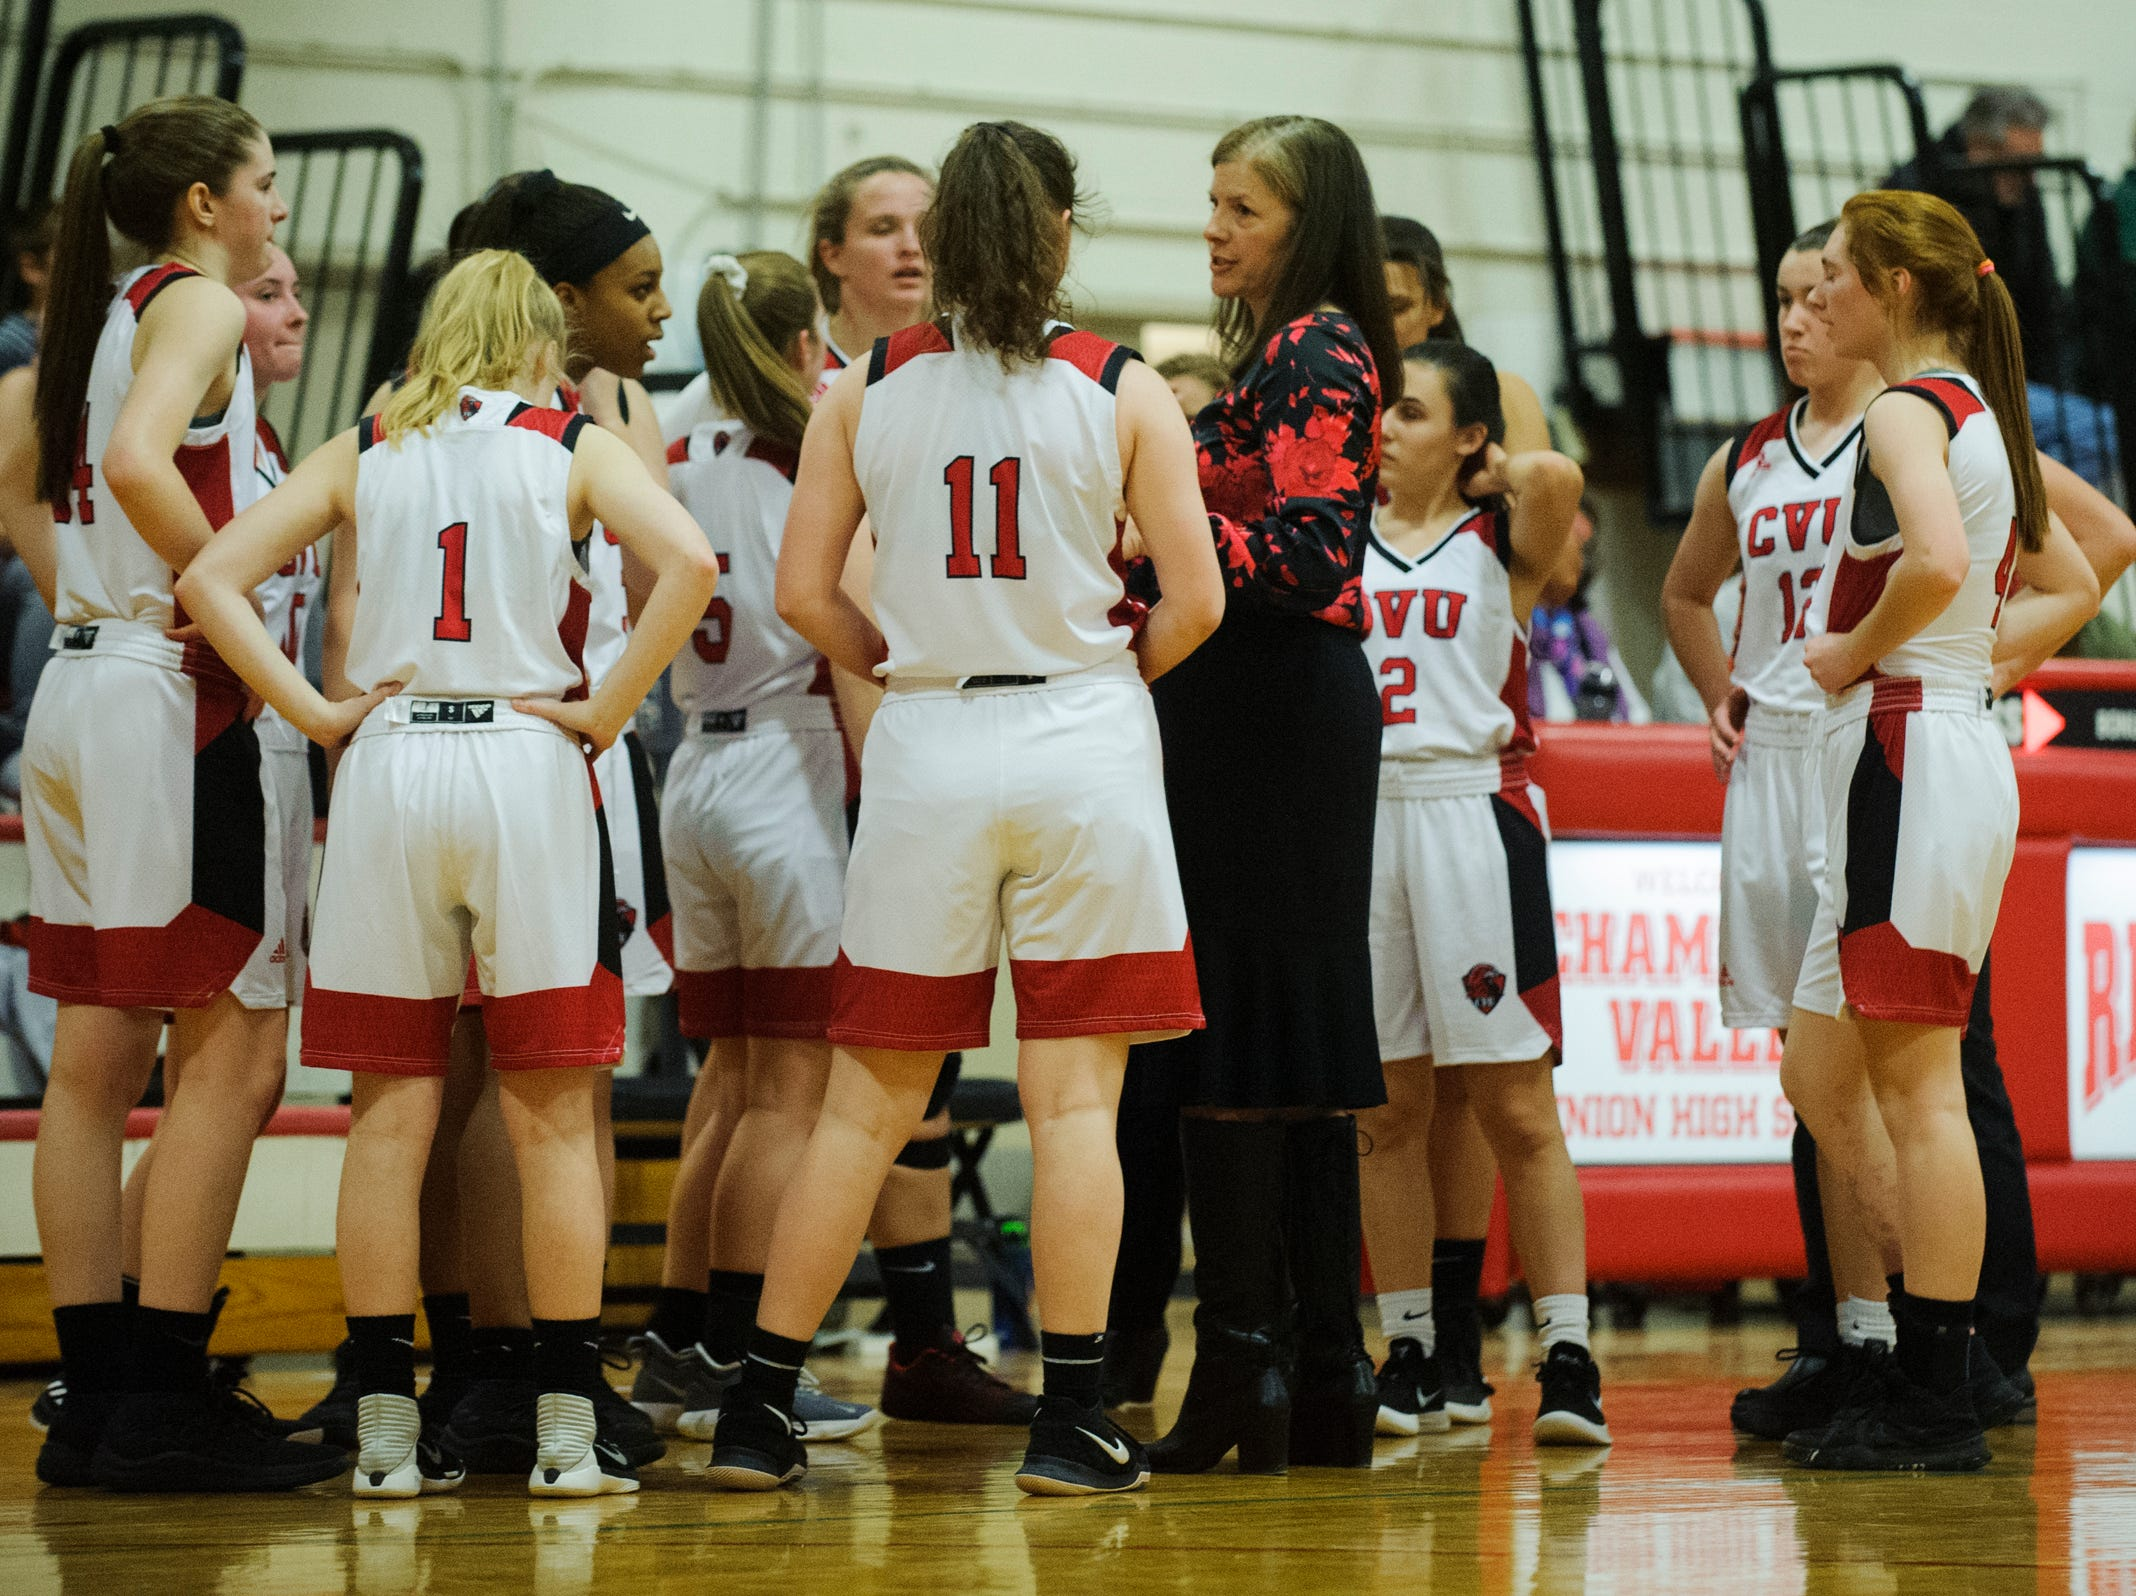 CVU head coach Ute Otley talks to the team during a time out in the high school girls basketball game between the Rice Green Knights and the Champlain Valley Union Redhawks at CVU High School on Friday night January 11, 2019 in Hinesburg.